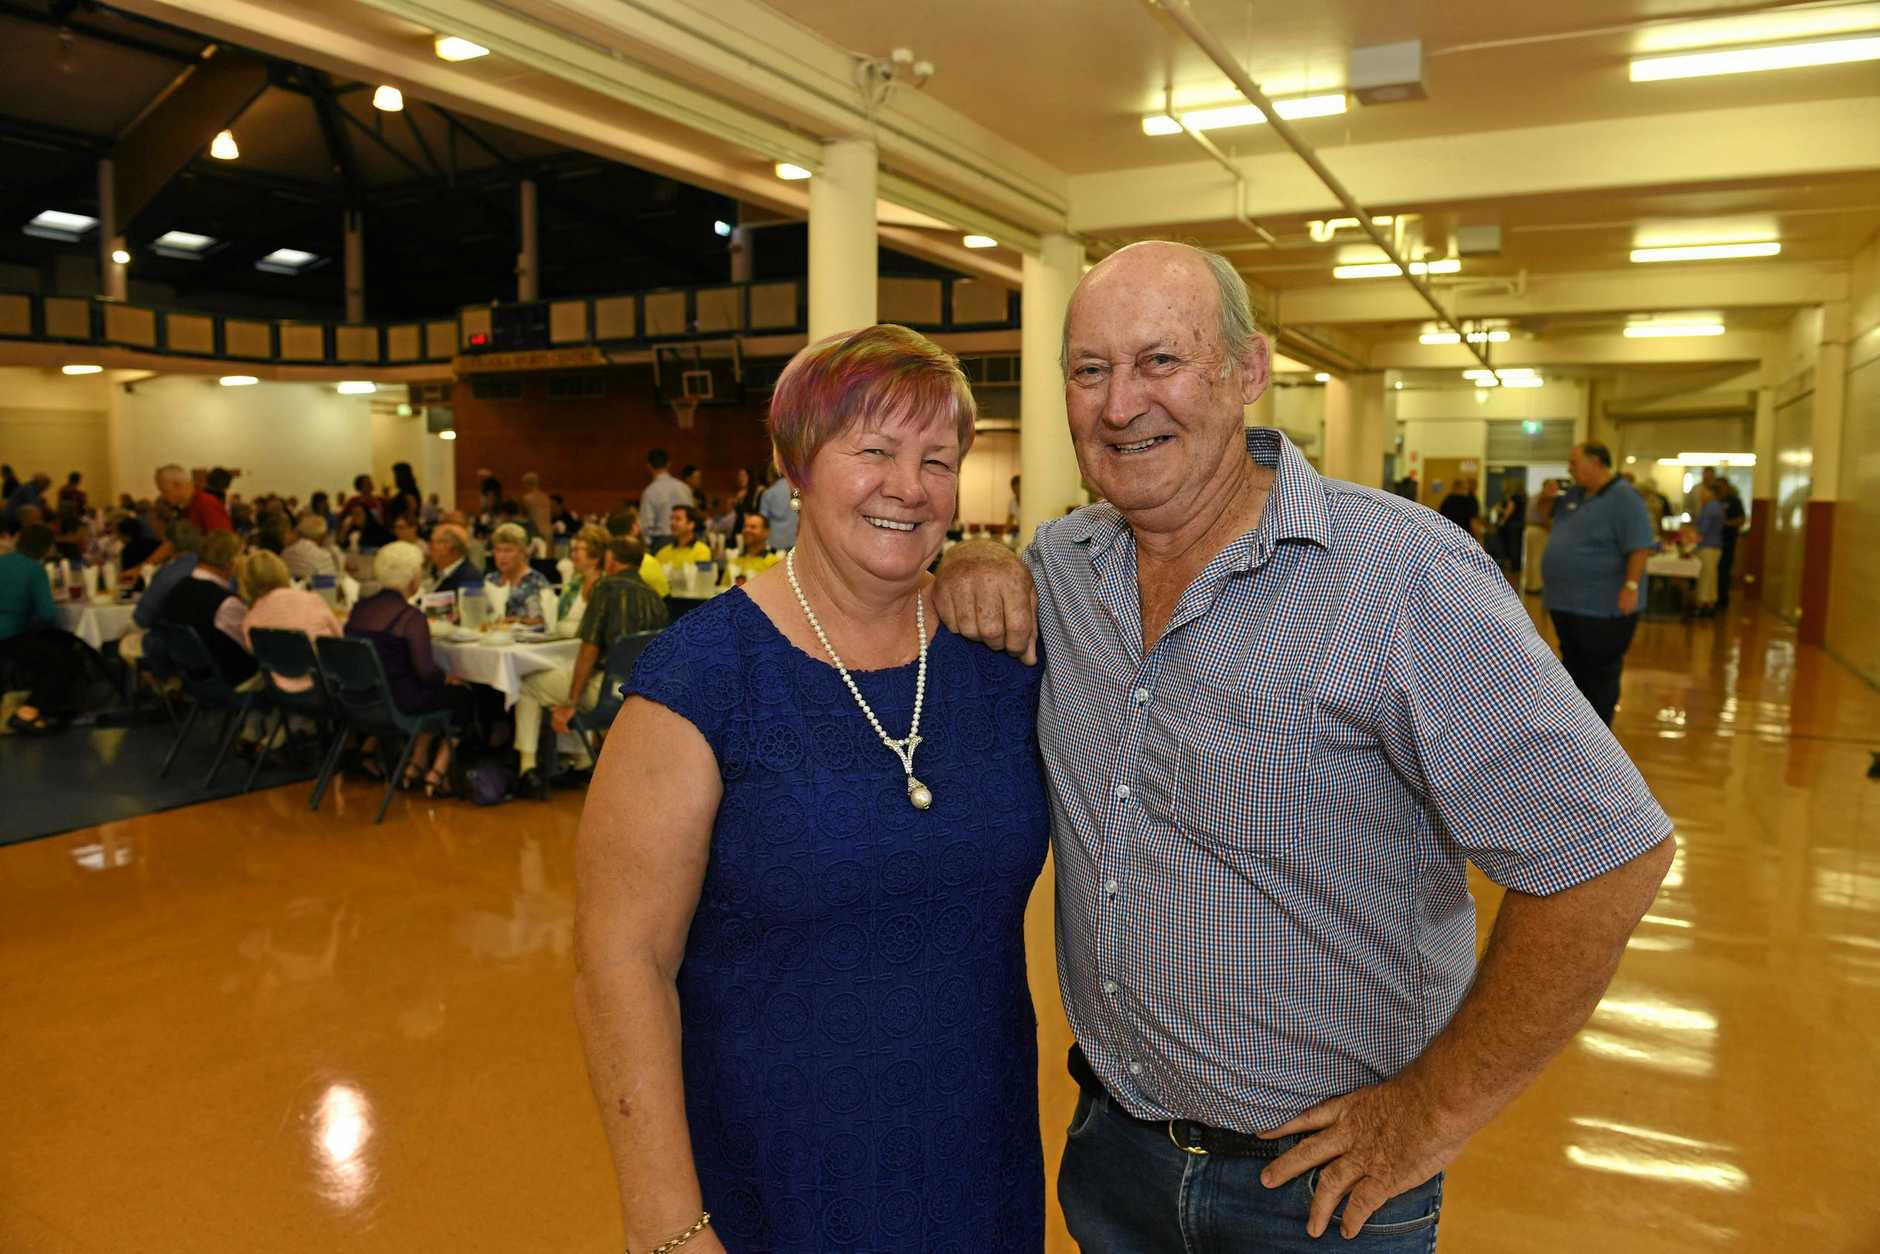 Gympie Mayor Prayer breakfast Marlene Owen and Tony Stewart.